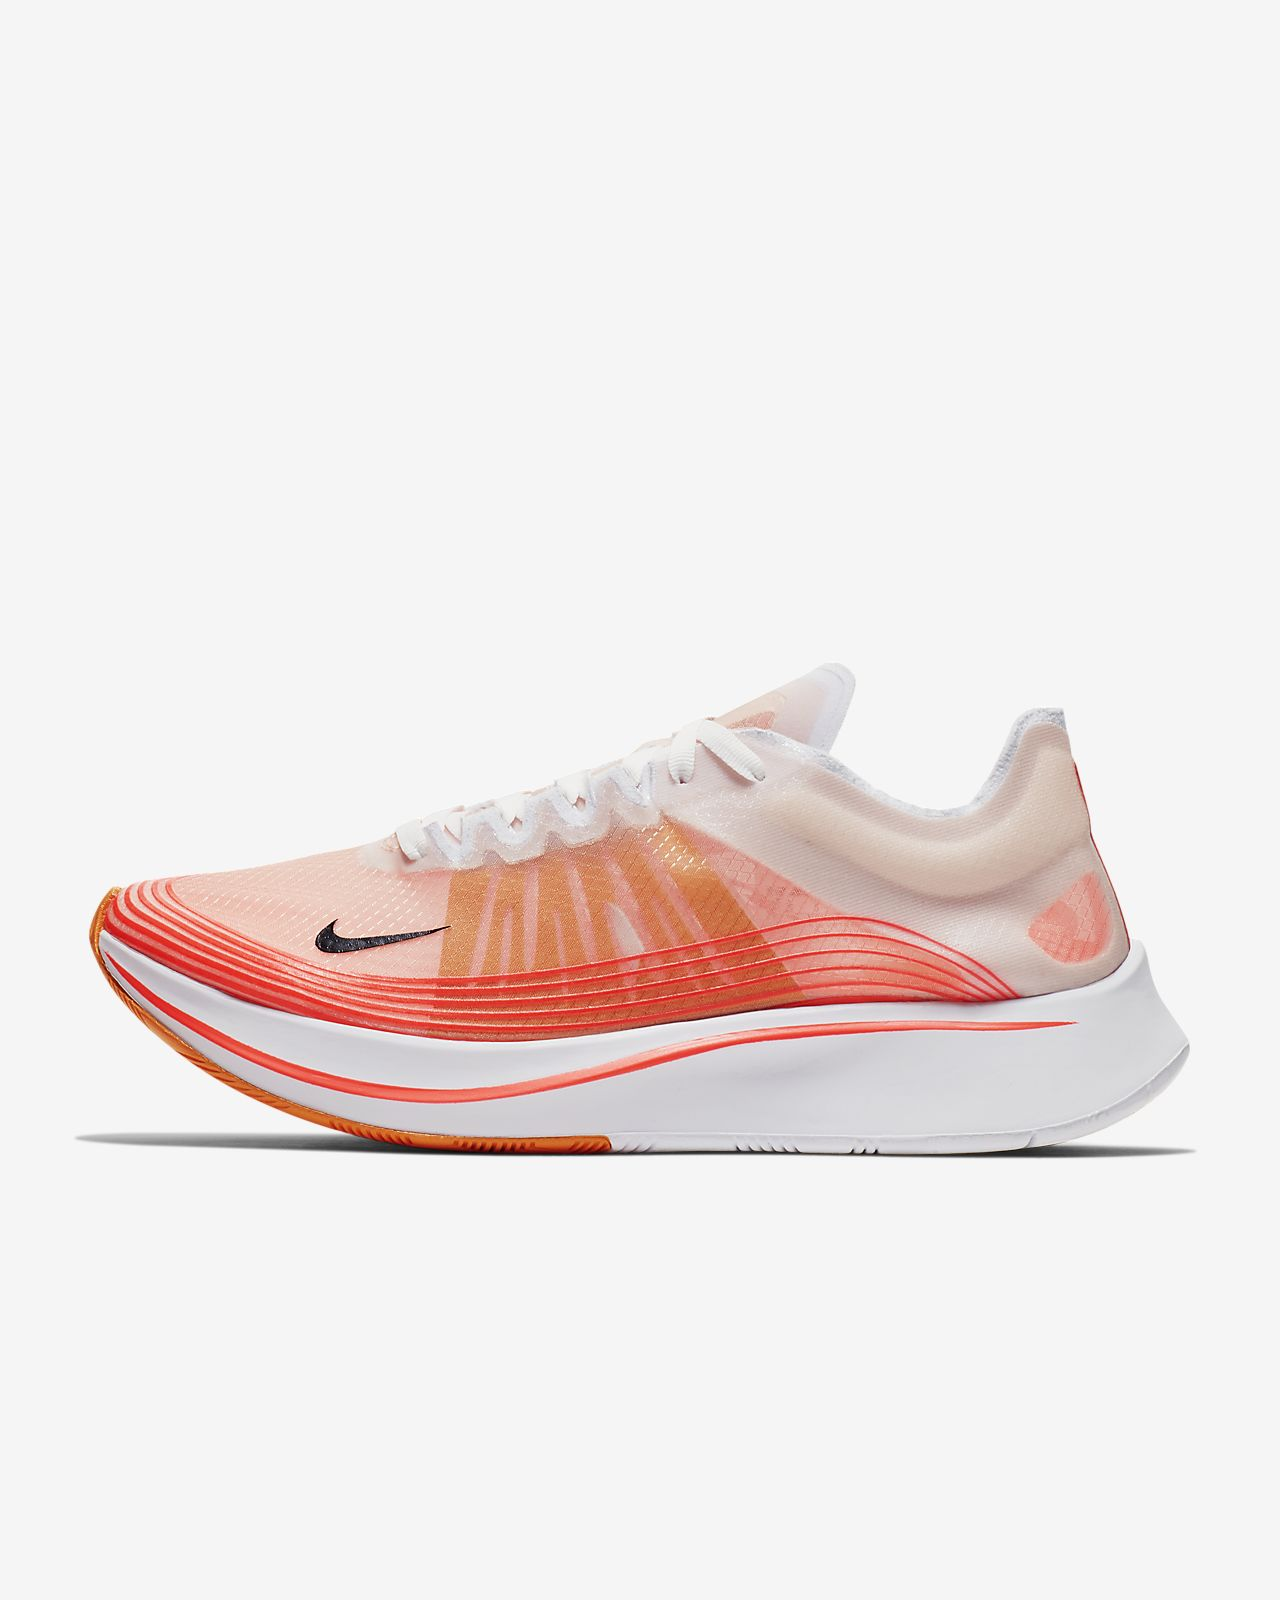 Nike Zoom Fly SP Womens Running Shoe